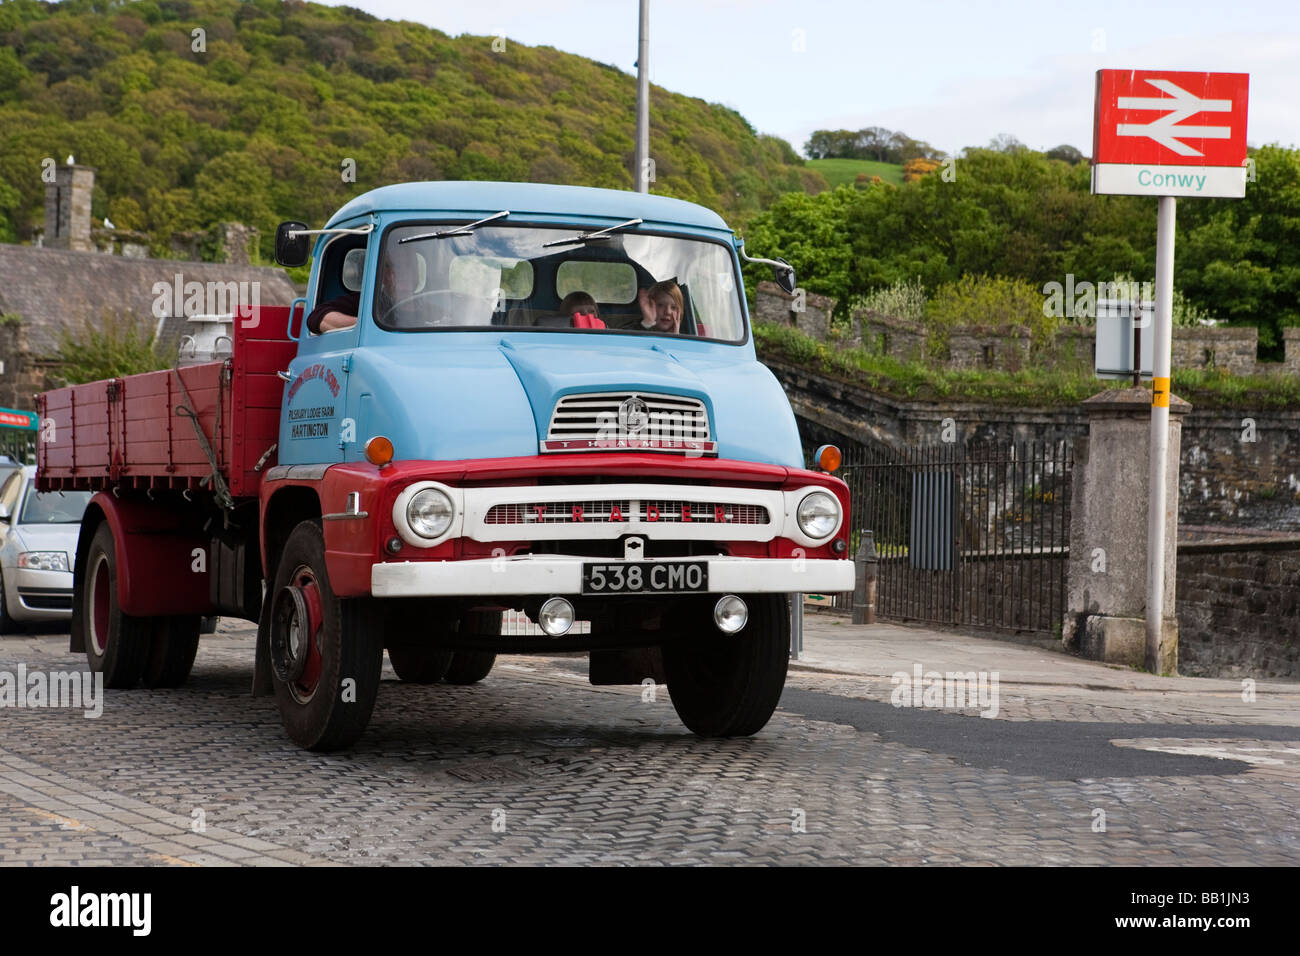 Old cars in Conwy. North Wales. Europe - Stock Image